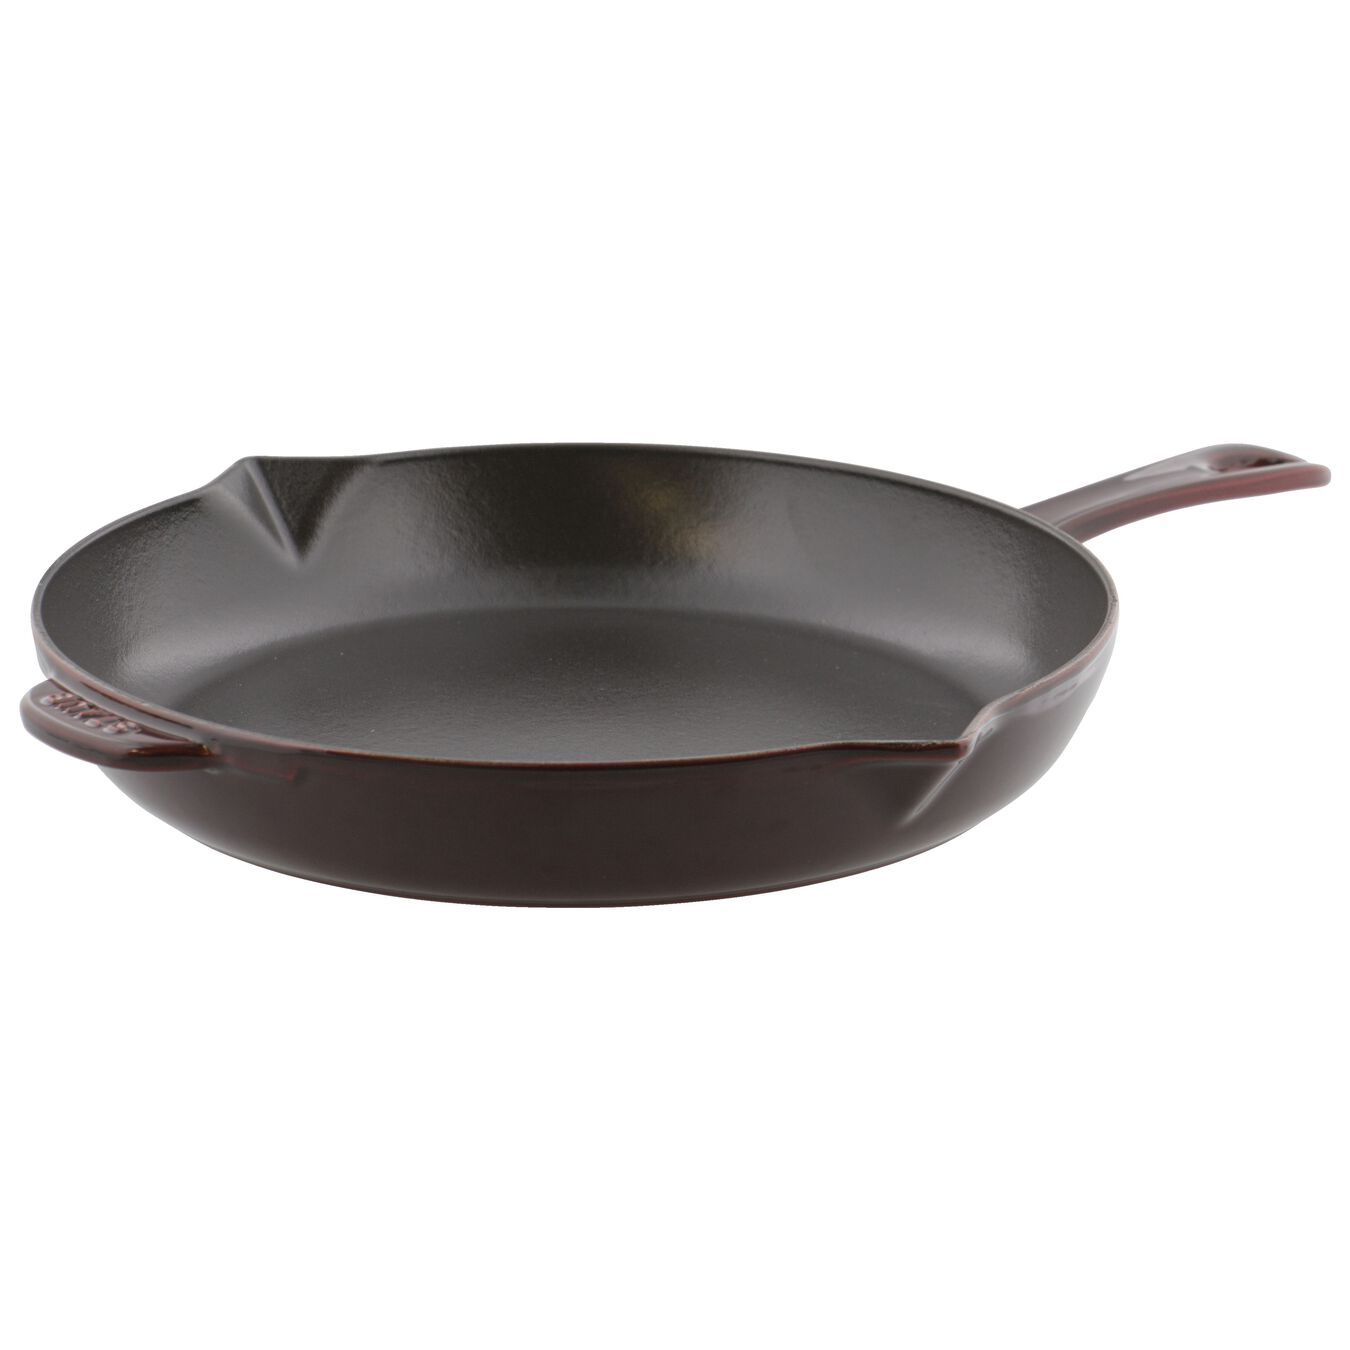 10-inch Fry Pan - Grenadine,,large 1